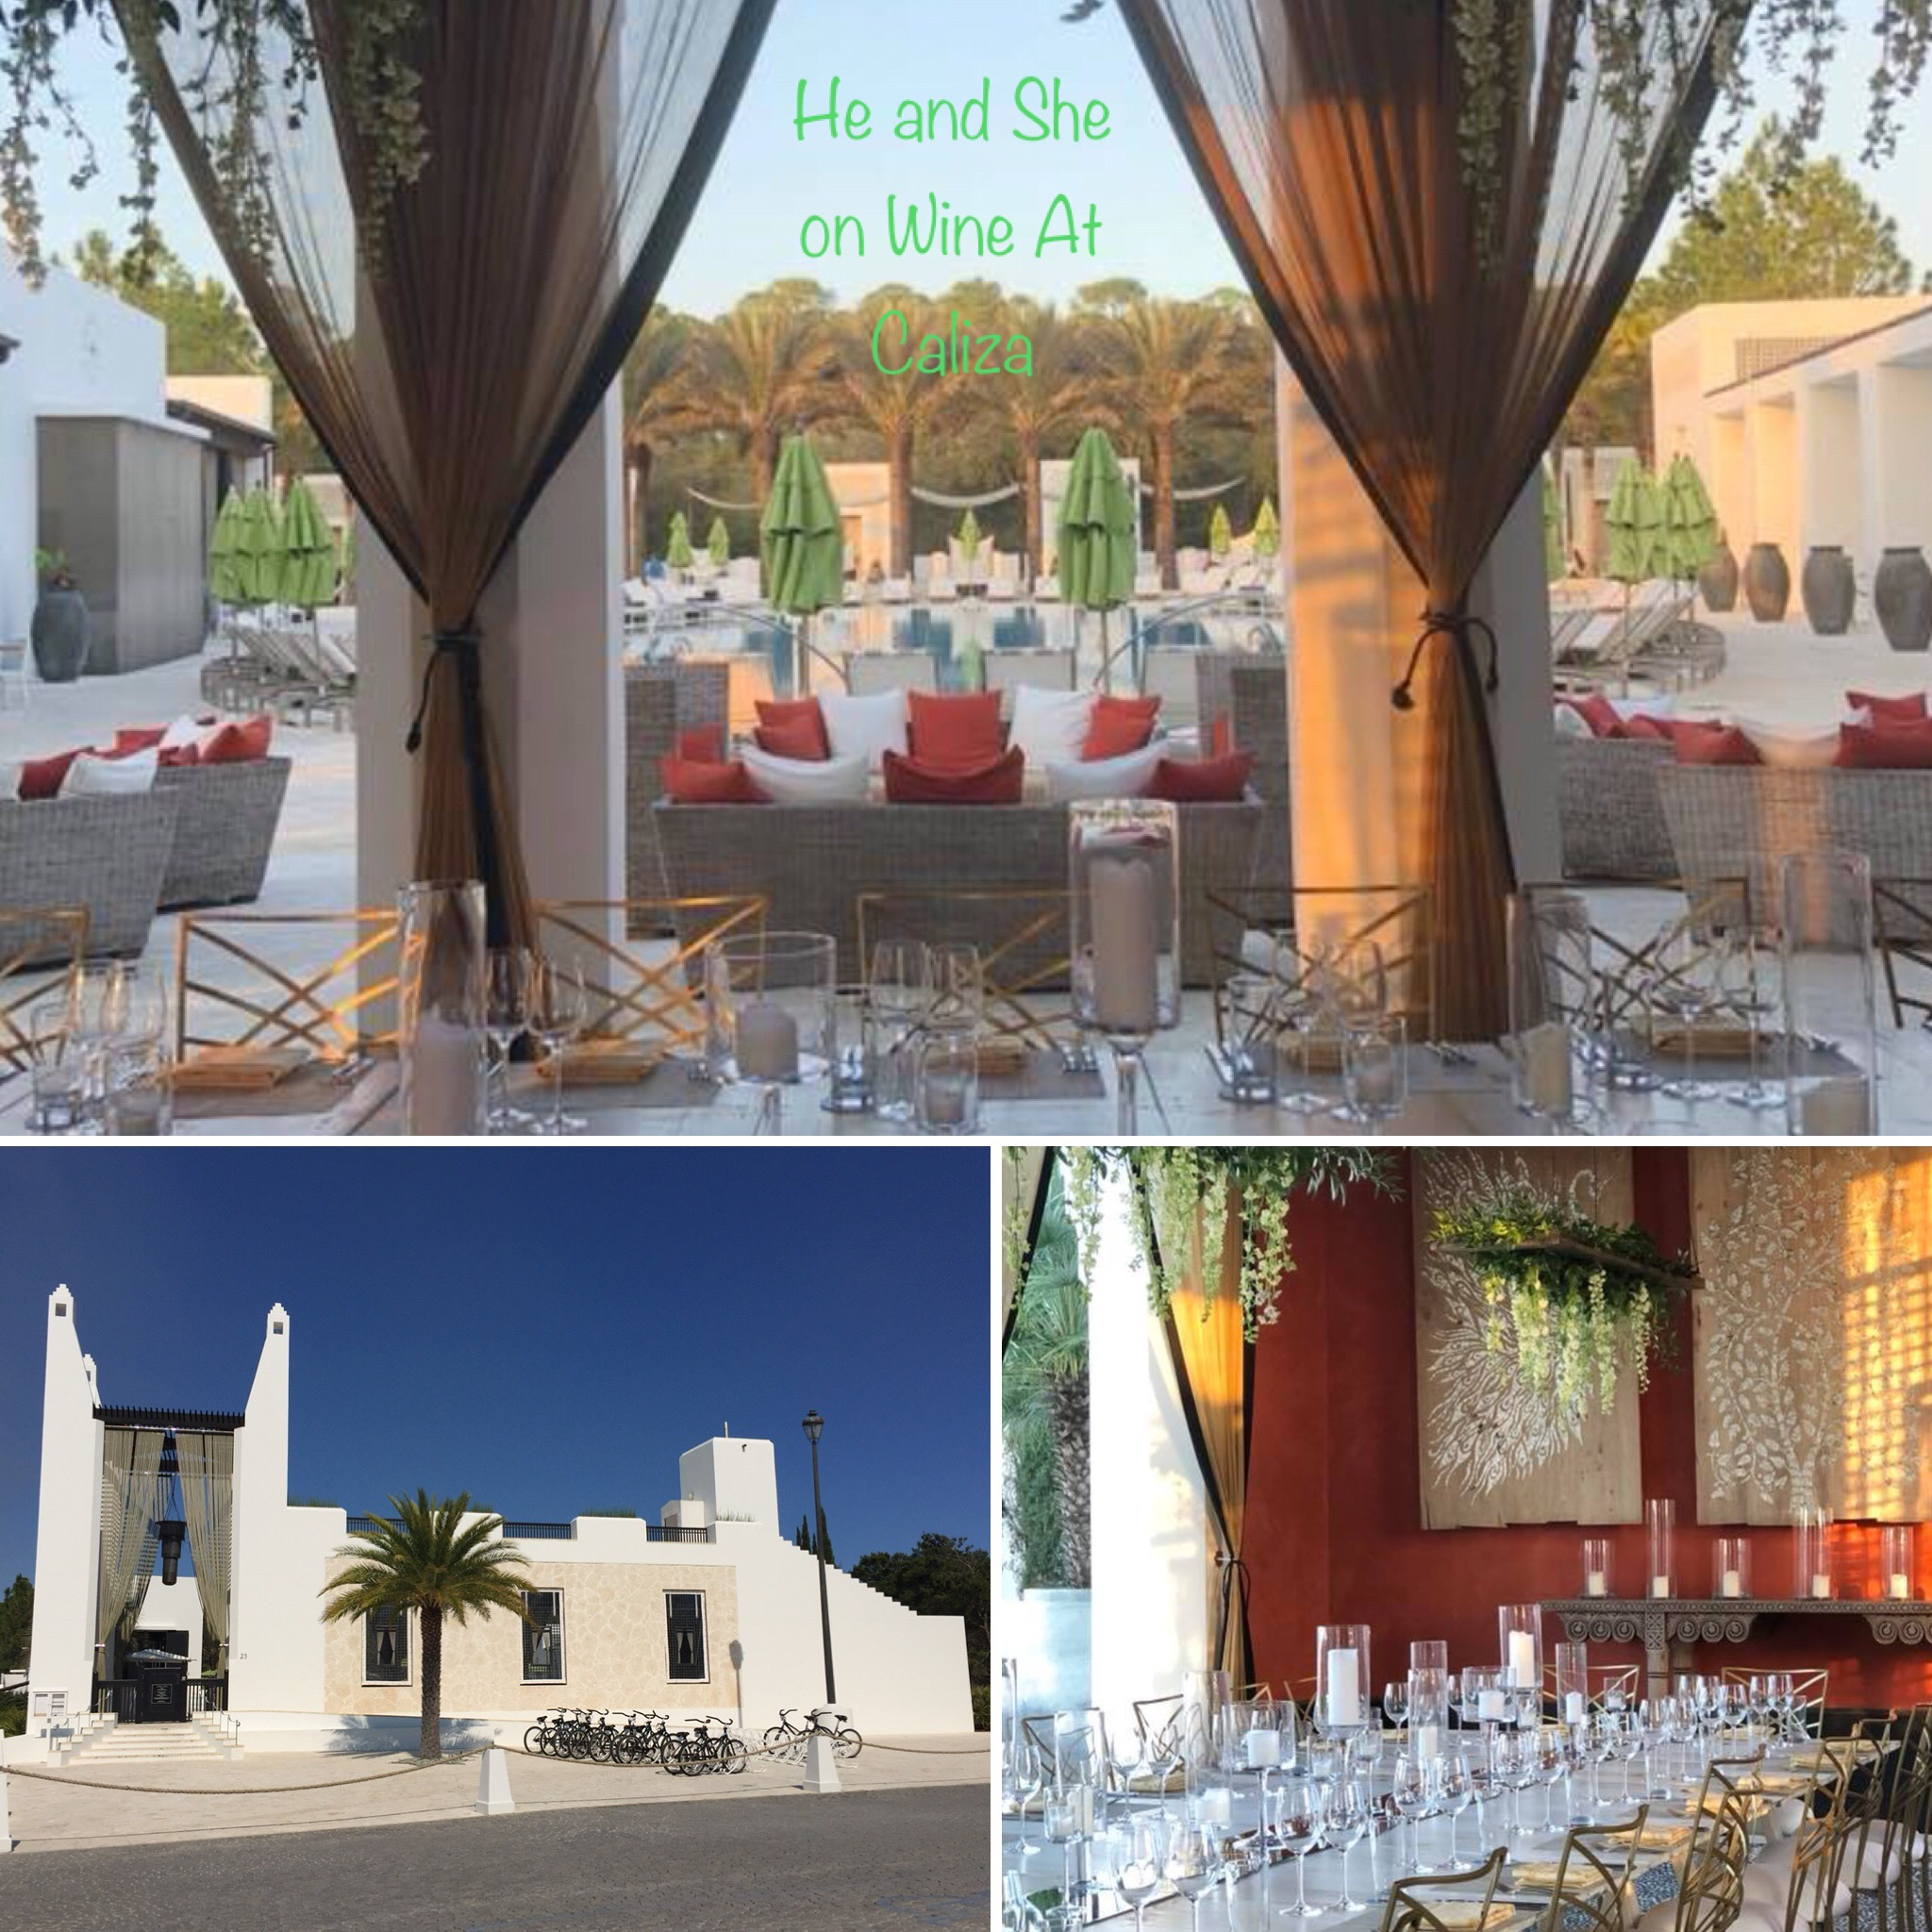 A wine dinner is held at Caliza on Wednesday night.